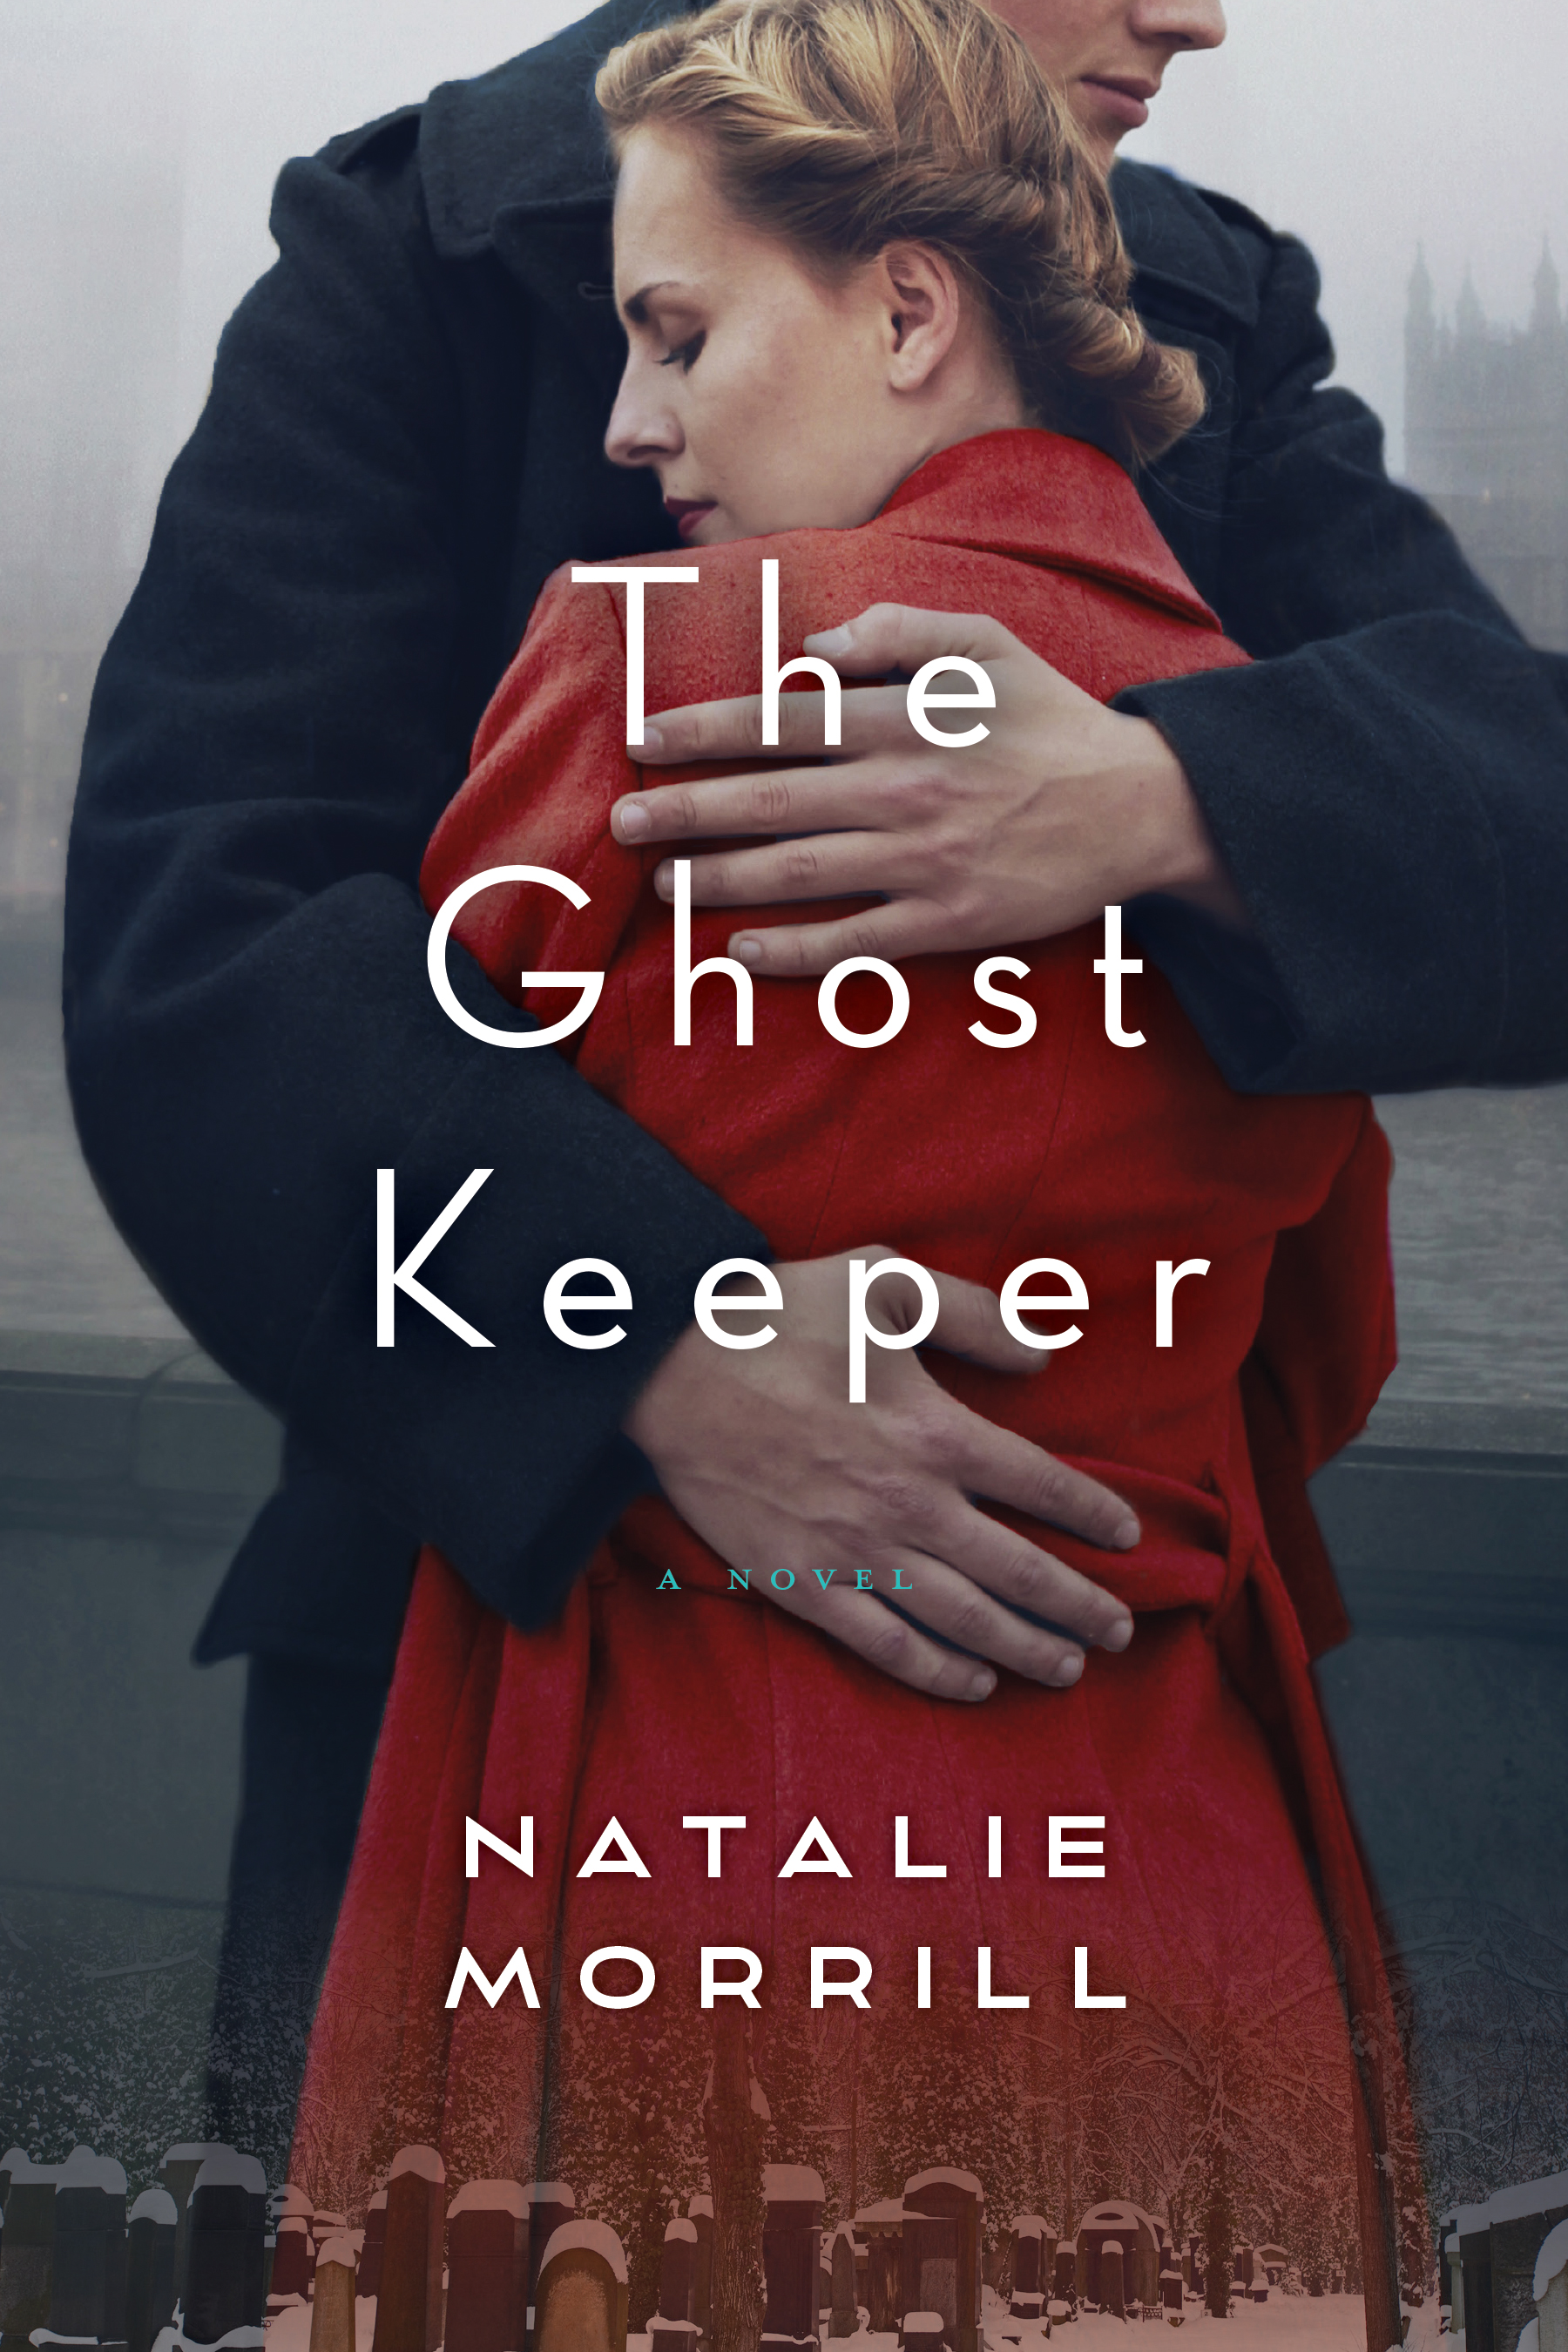 The Ghost Keeper